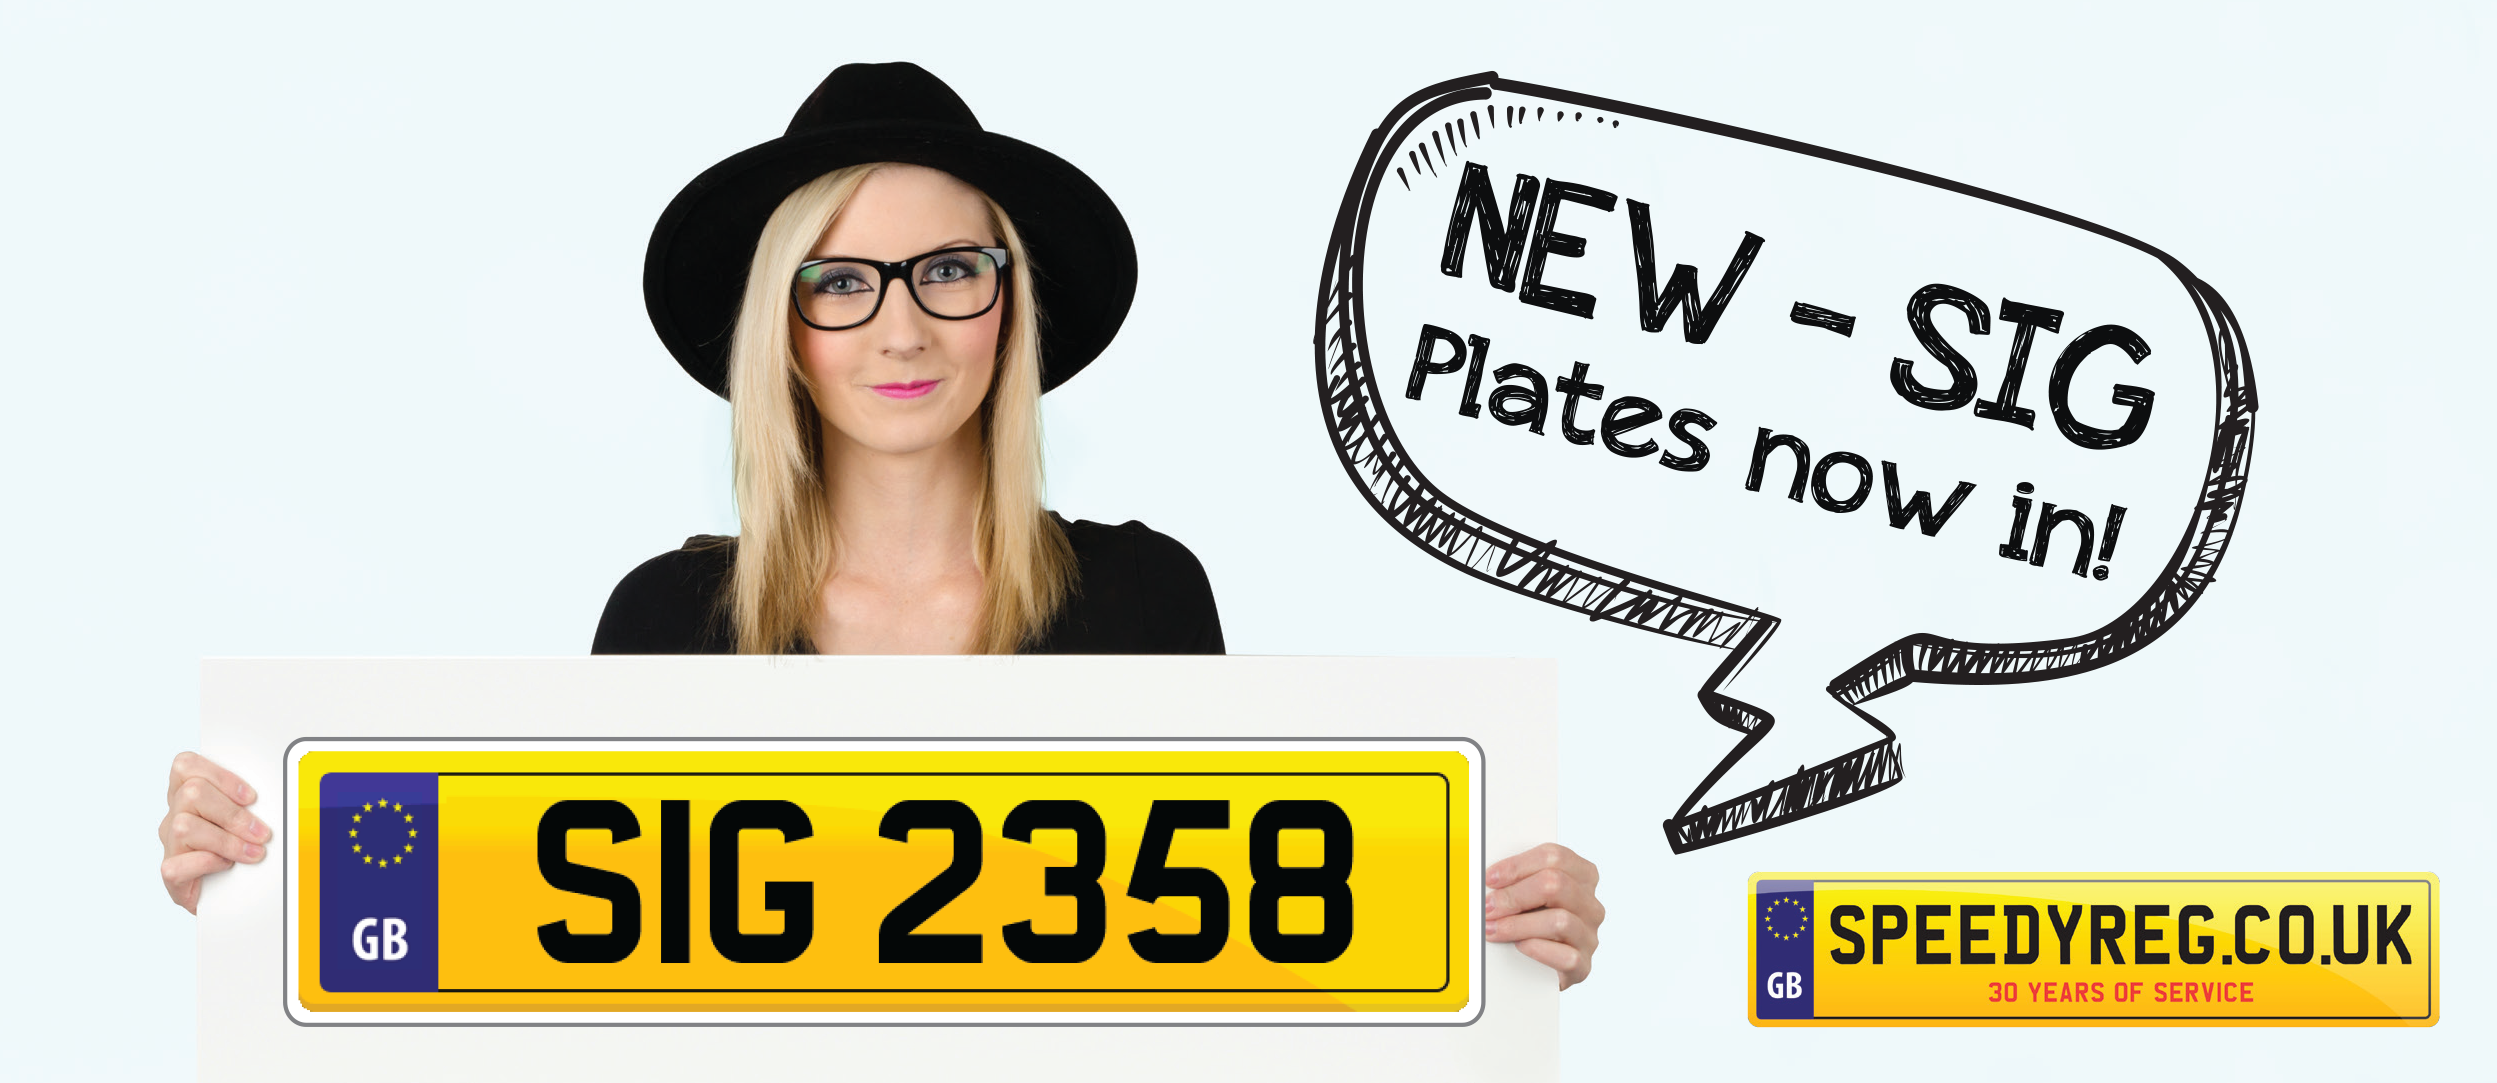 1-new-sig-plates-now-in